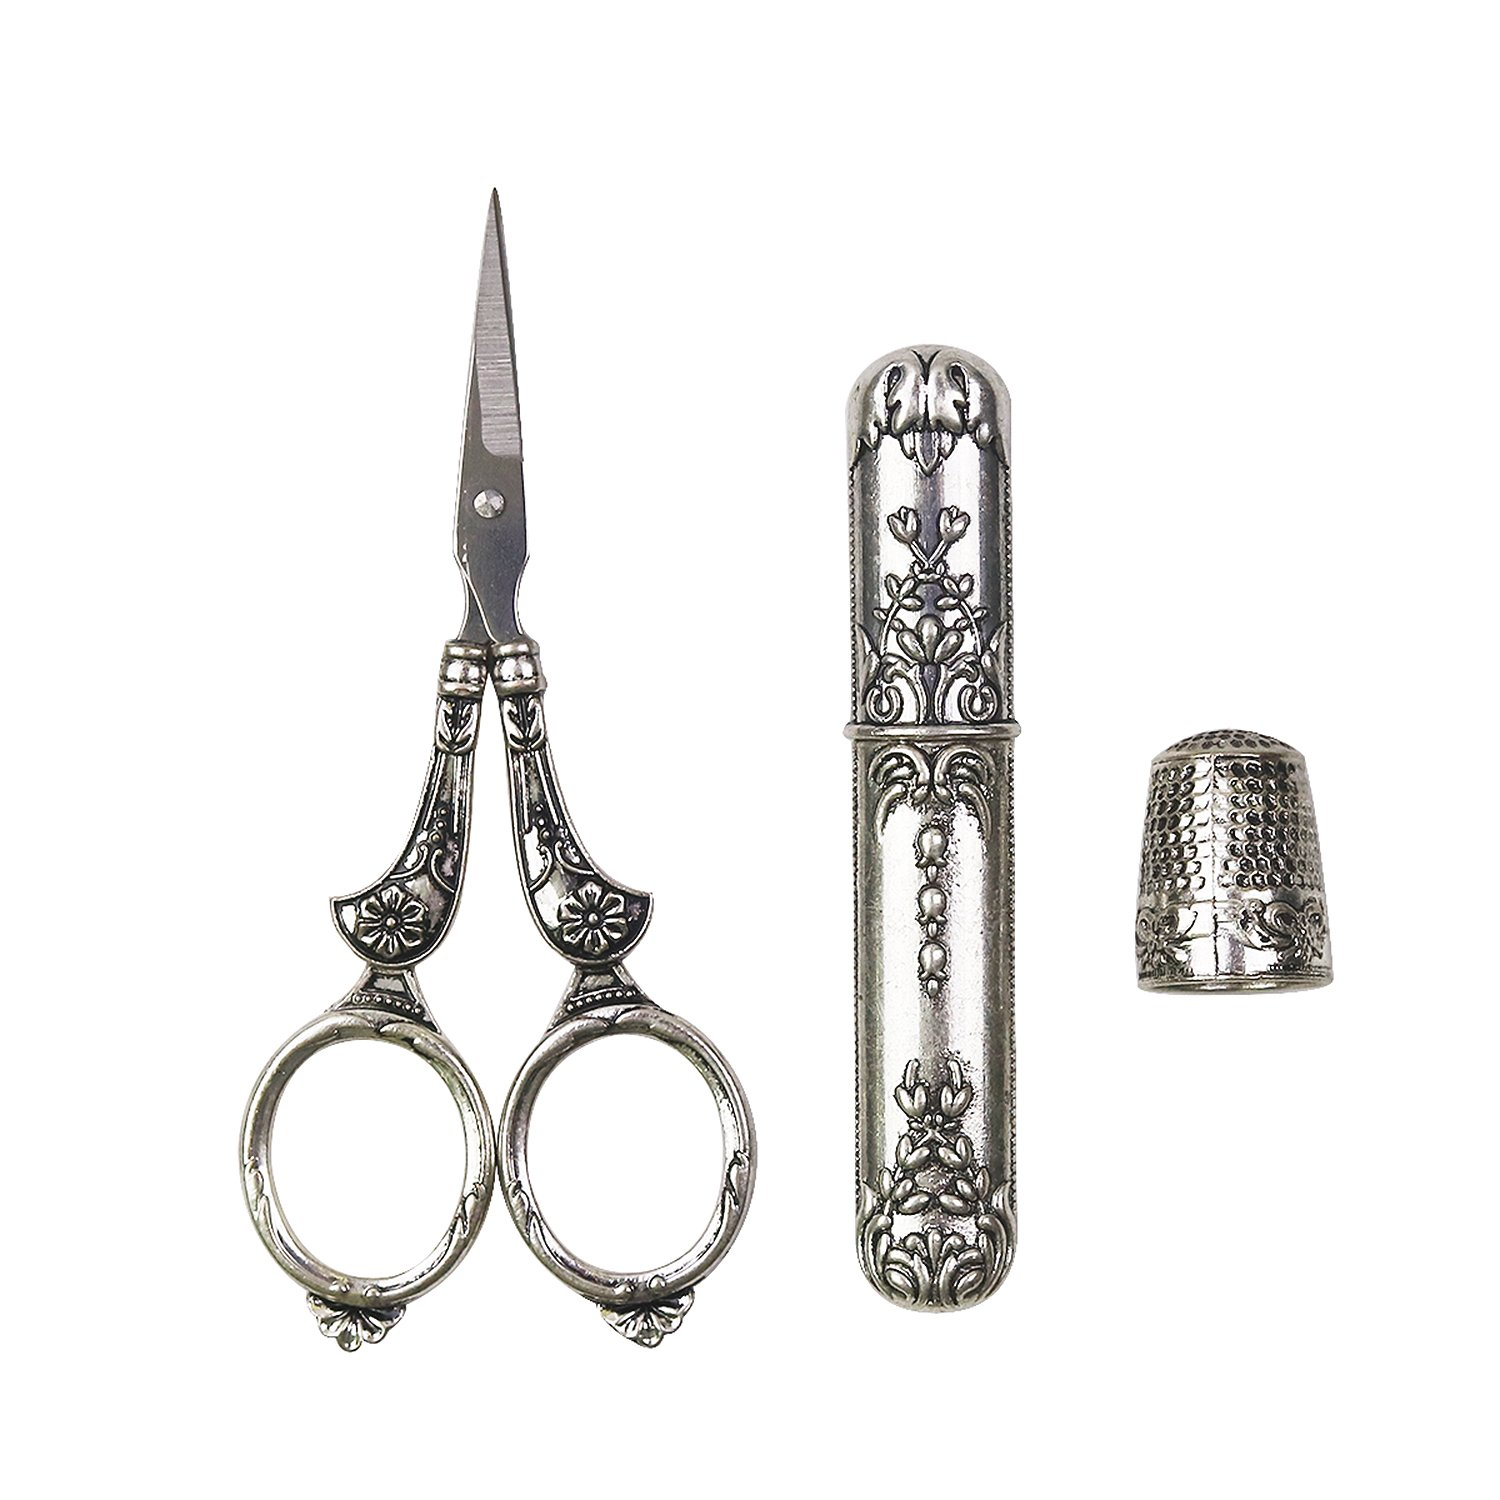 D&D Sewing Tool Kit, Sewing Tools Set Includes Embroidery Scissors, Metal Needle Case, Thimble for Quilting, Craft, Needlework & Everyday Use